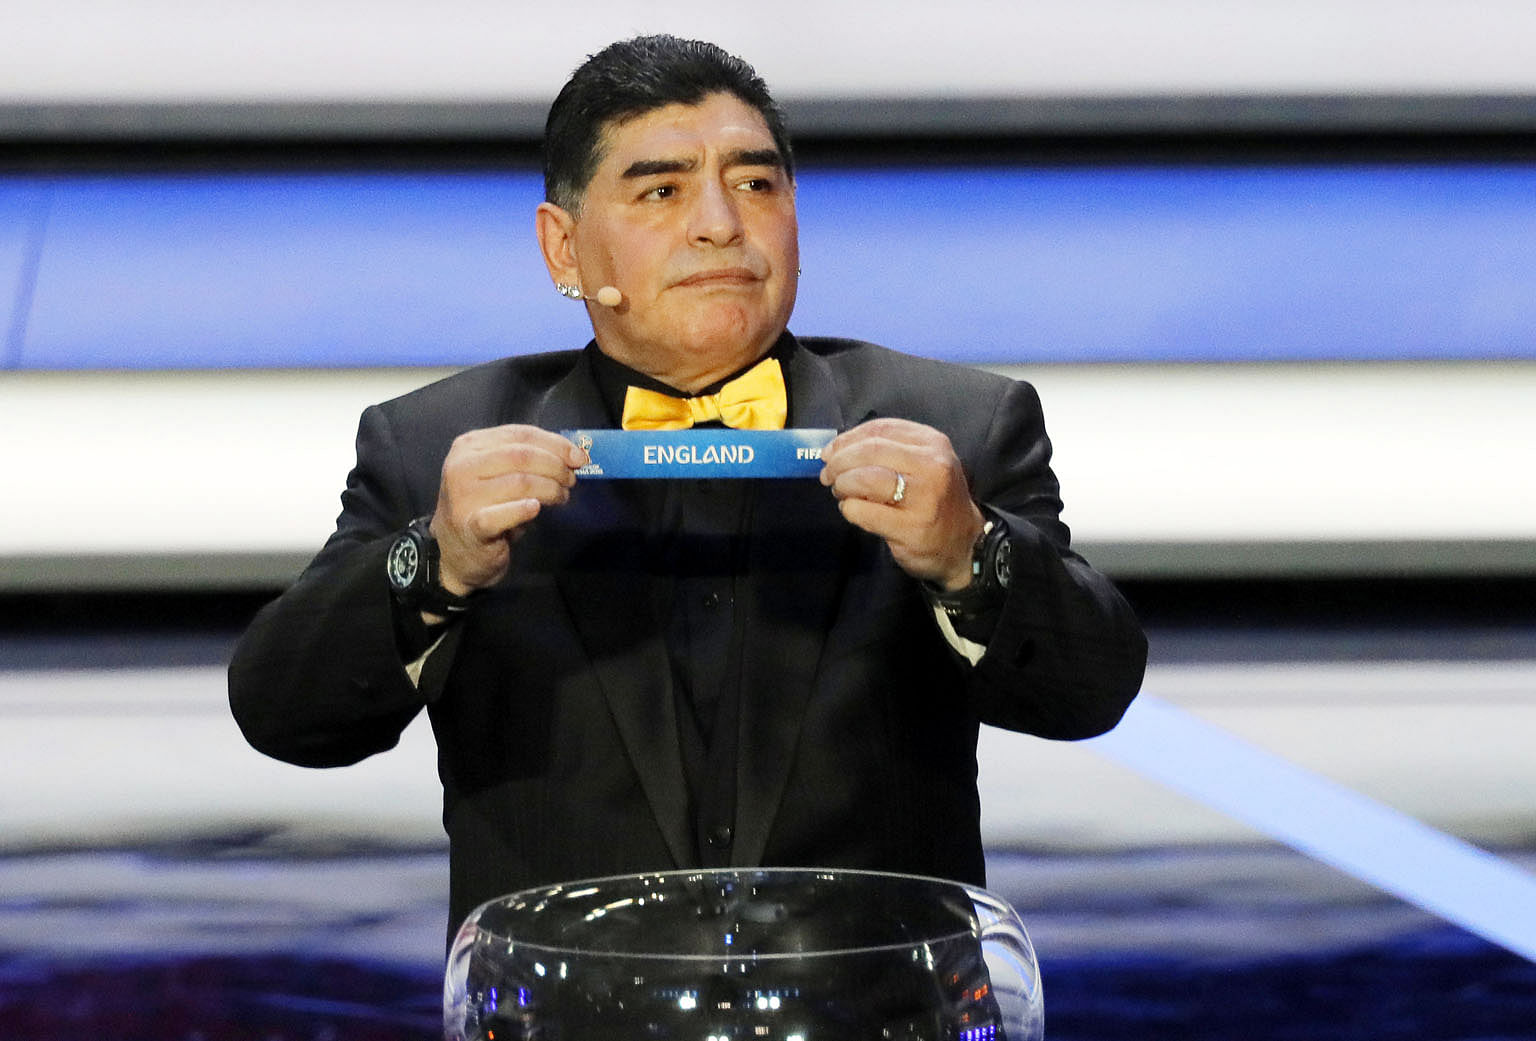 Draw assistant for the night, former Argentinian international and World Cup winner Diego Maradona, showing the ticket of England as he gives the English a lucky break with his hands for once.